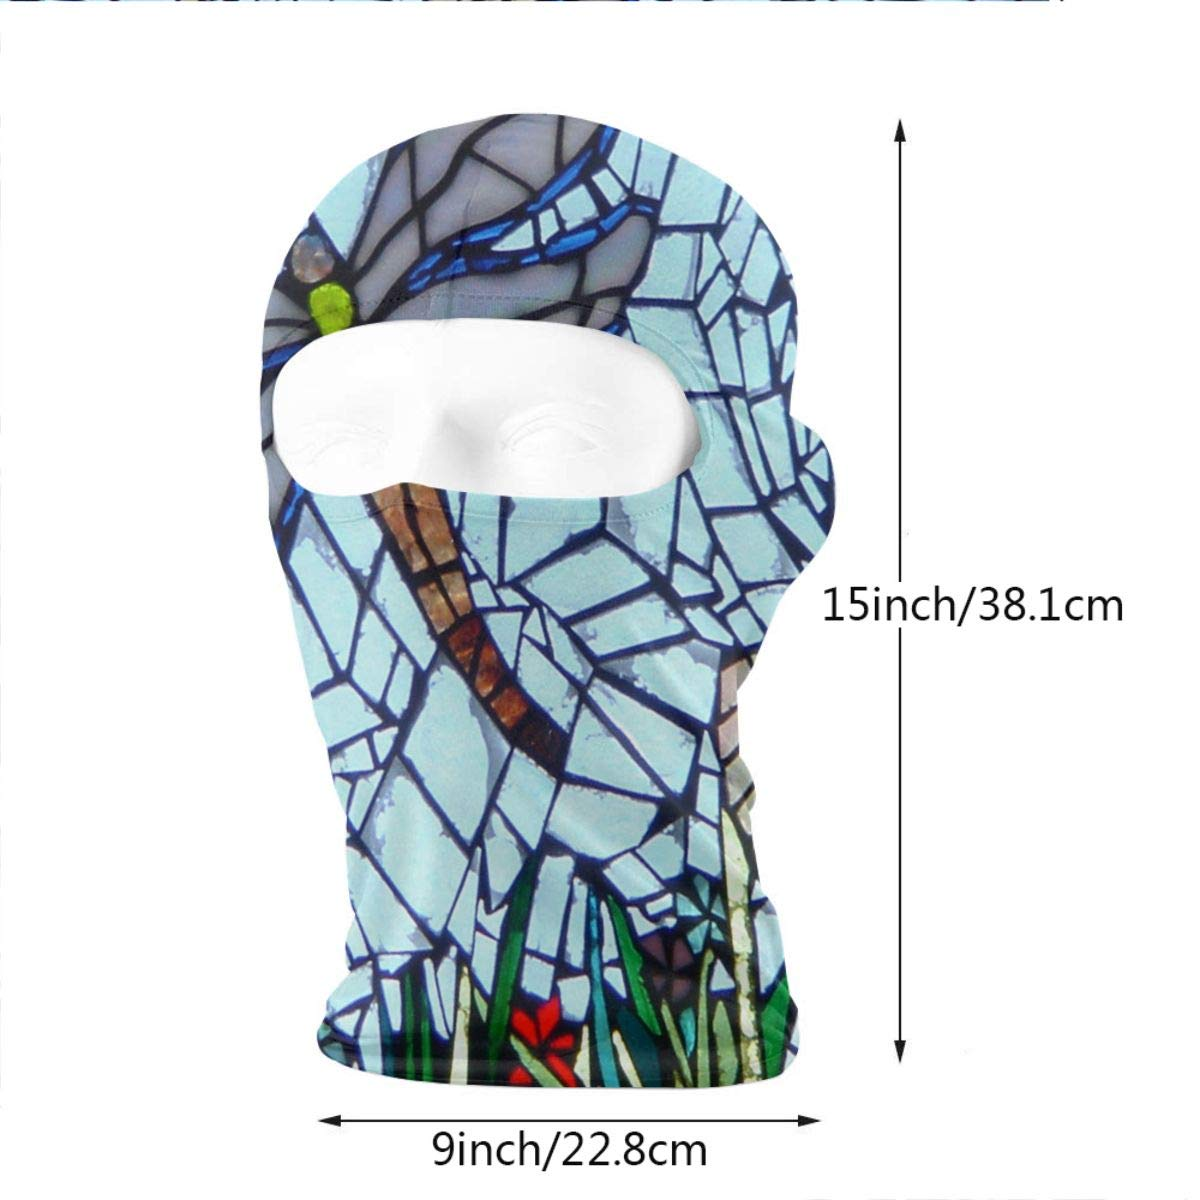 Balaclava Drawn Elephant Baby Full Face Masks Ski Sports Cap Motorcycle Hood For Cycling Sports Mountaineering